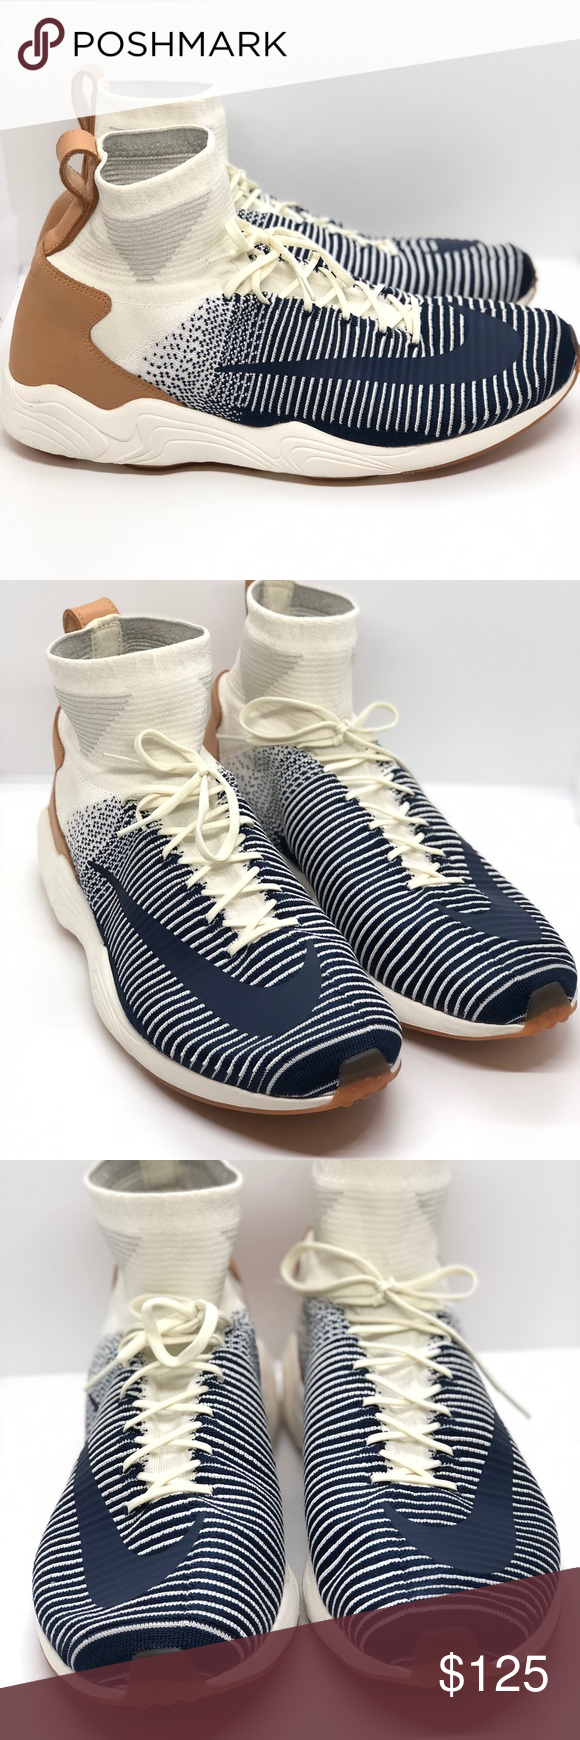 new style 09b78 2db8e NEW Nike Zoom Mercurial XI FK Mens 844626-101 NEW Nike Zoom Mercurial XI FK  Mens 844626-101 Sail Navy Gum Flyknit Shoe Size 13 Without box. 100%  Authentic.